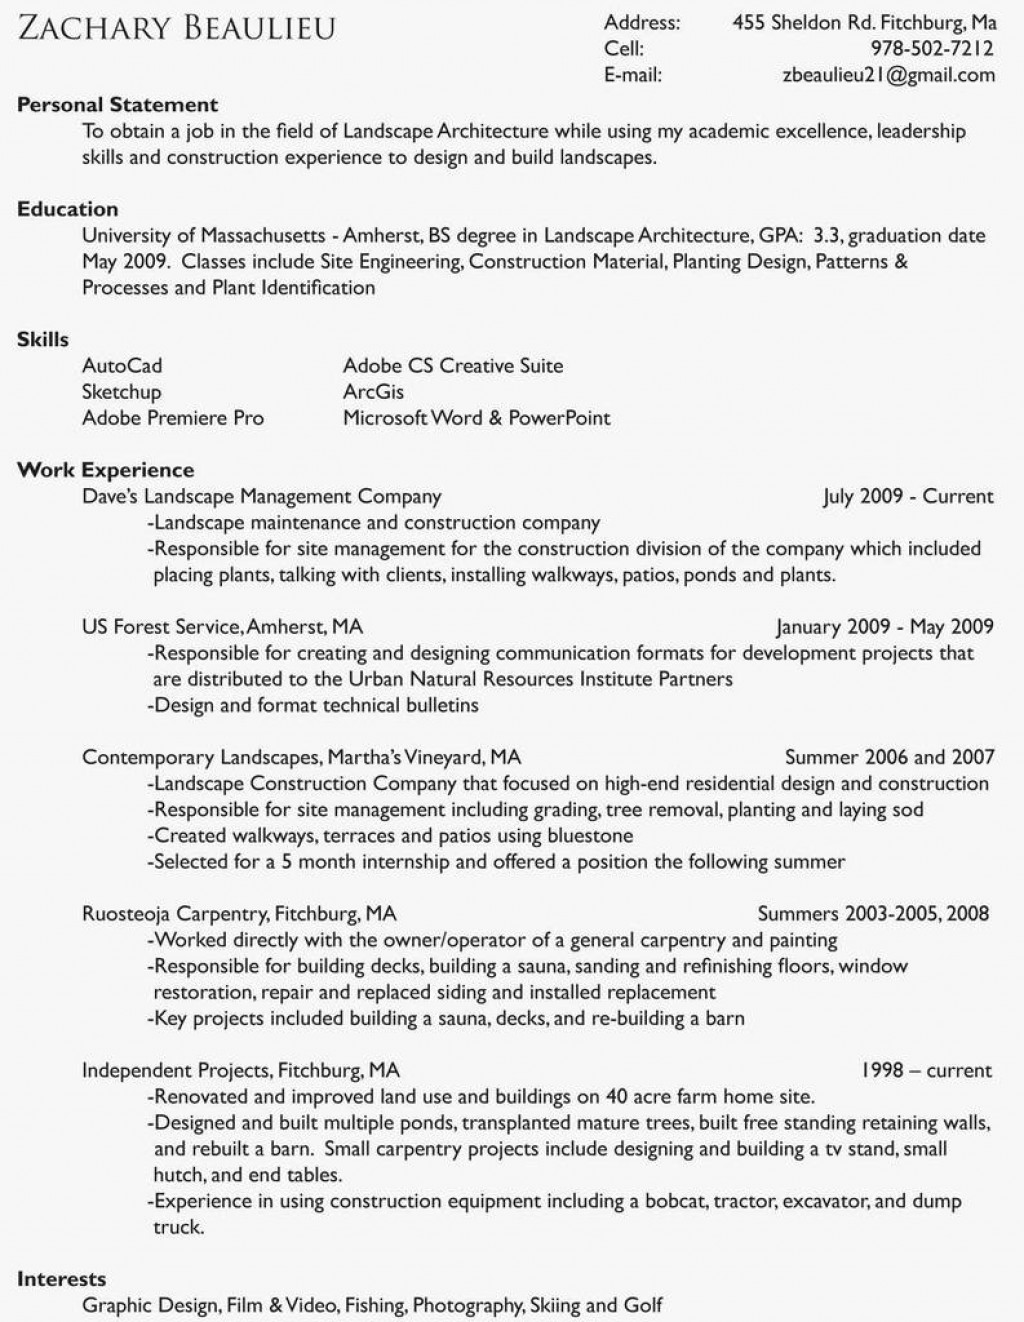 019 Esthetician Resume Skills Inspirational Business Management Essay Topics Writing Service Unethical Of Research Singular Paper Small Pdf Large